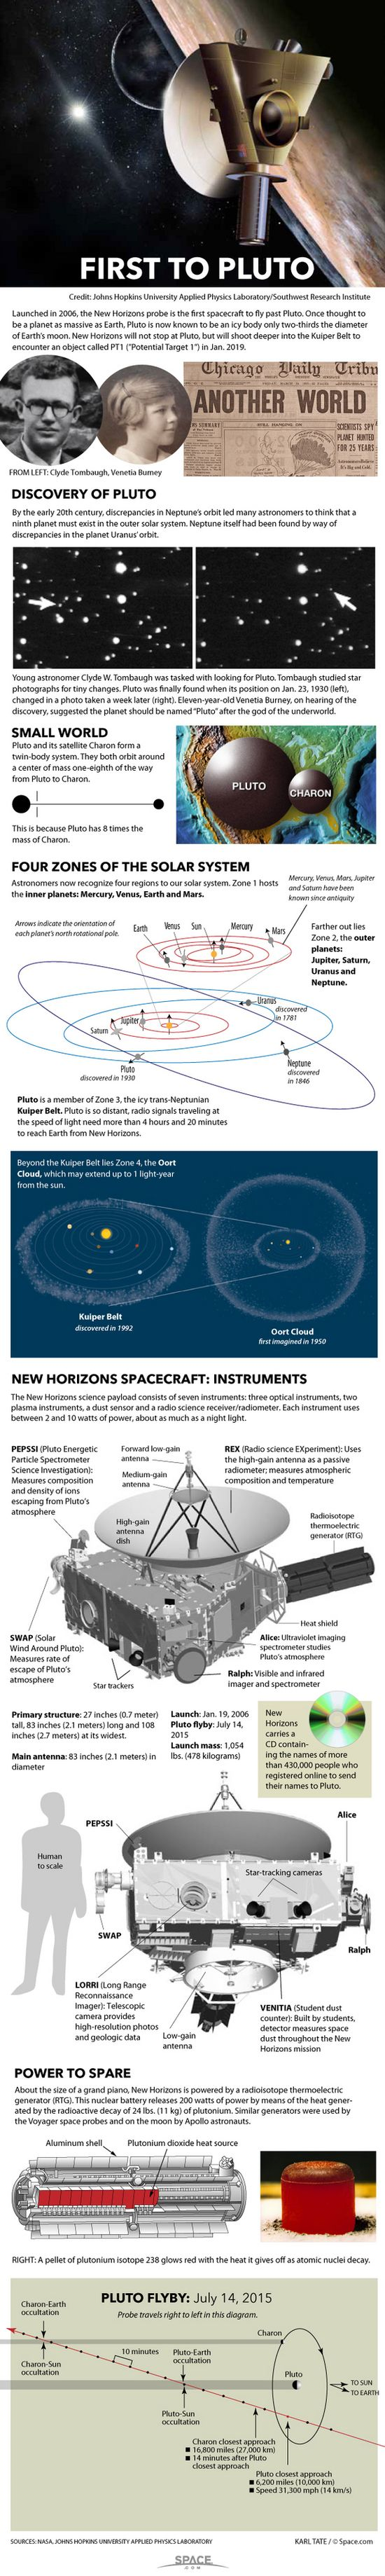 How NASA's New Horizons Mission to Pluto Works (Infographic)